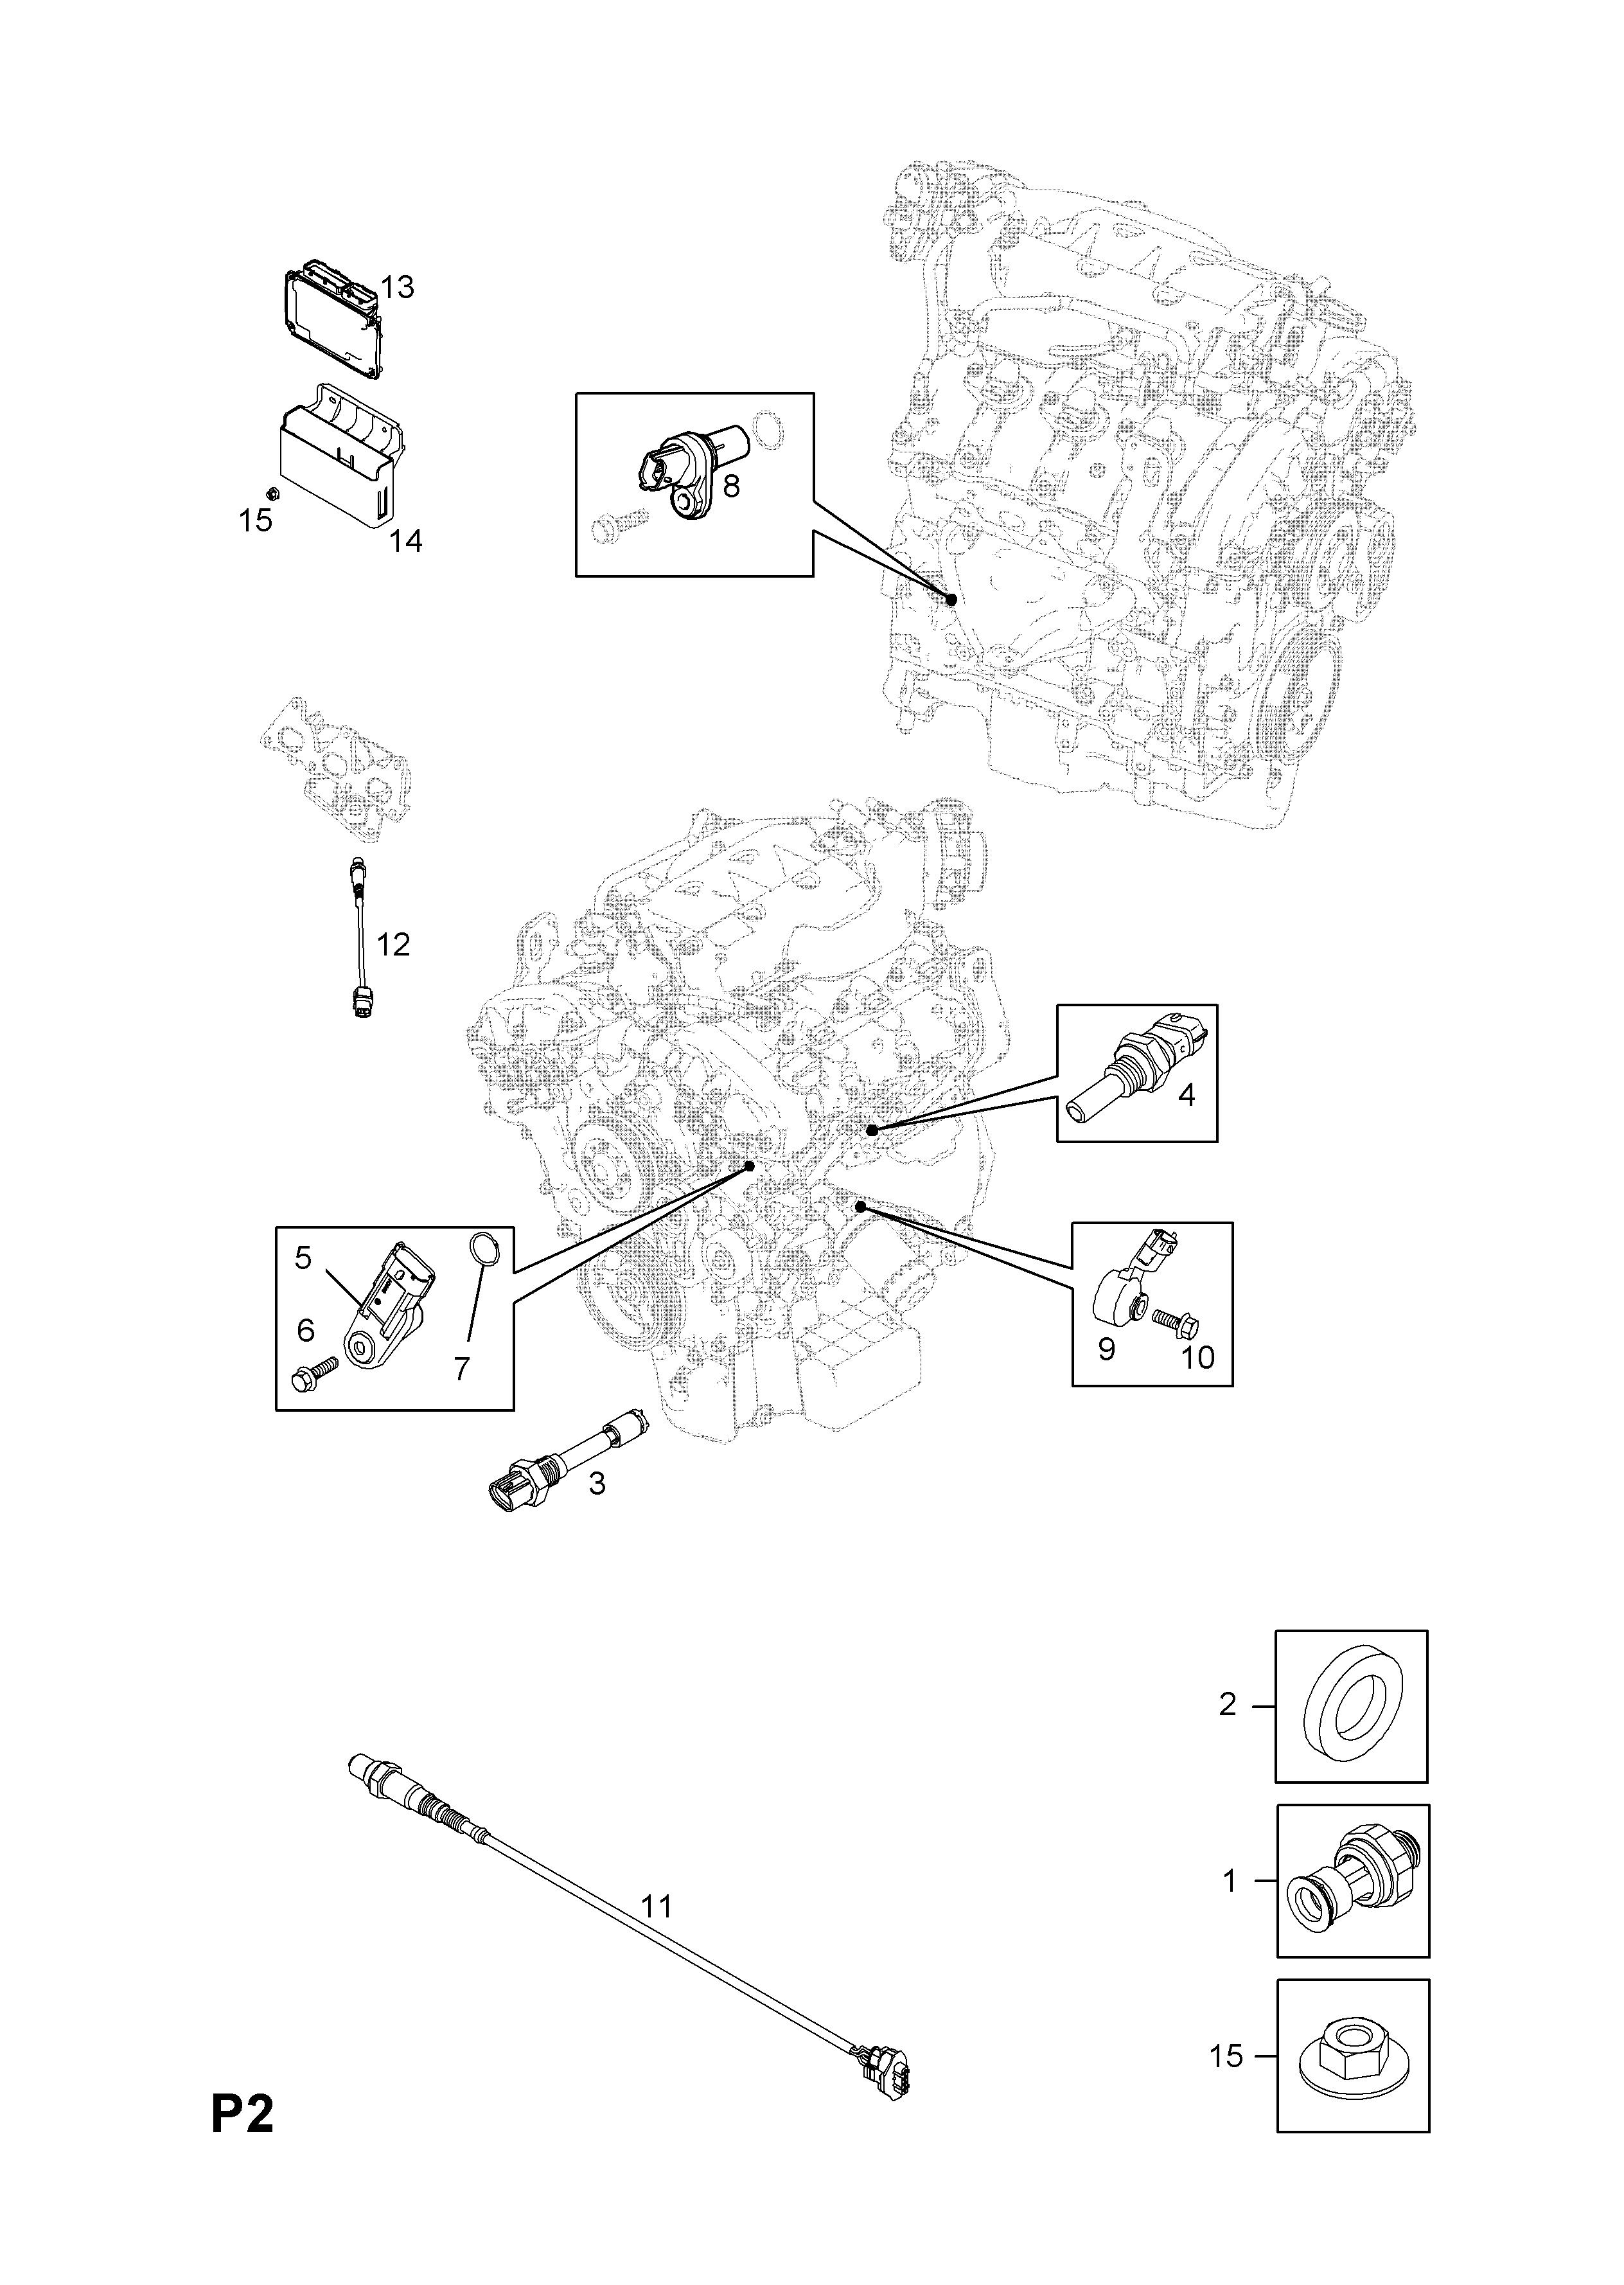 opel antara wiring diagram database Wiring Symbols opel antara 2007 p electrical 1 engine and cooling 117 opel corsa list of parts model